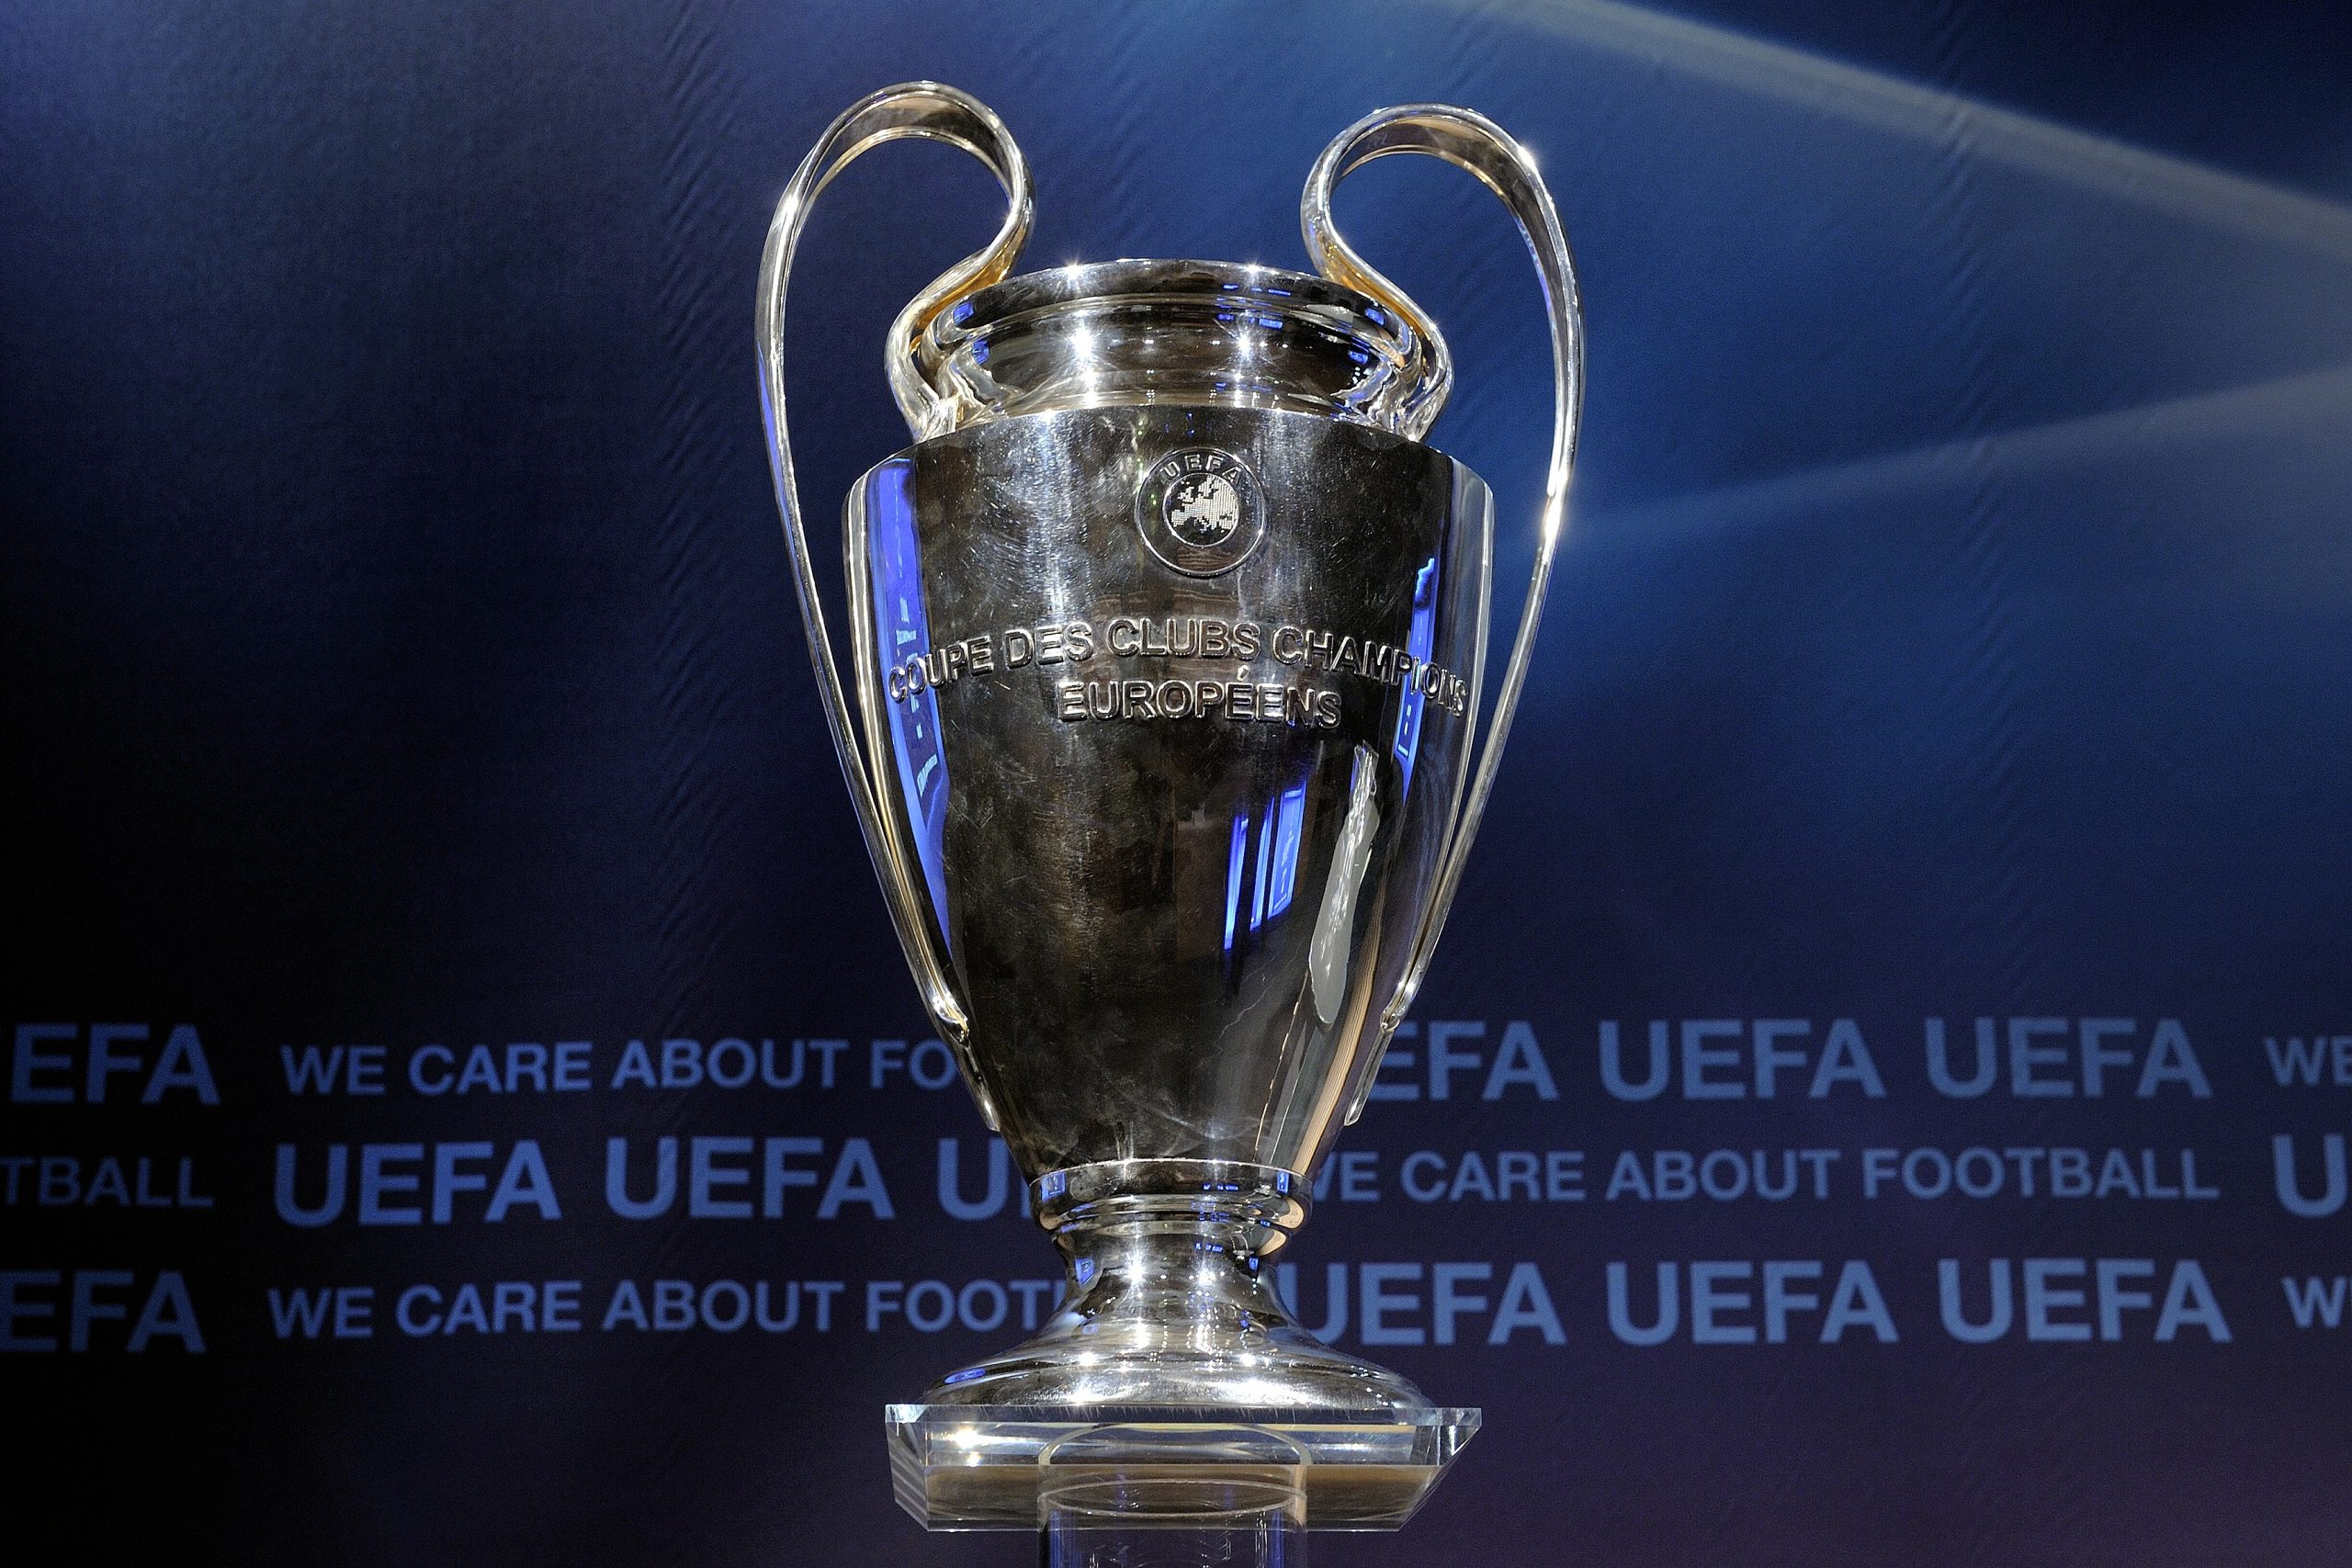 2021/22 UEFA Champions League Starts in Mid-September